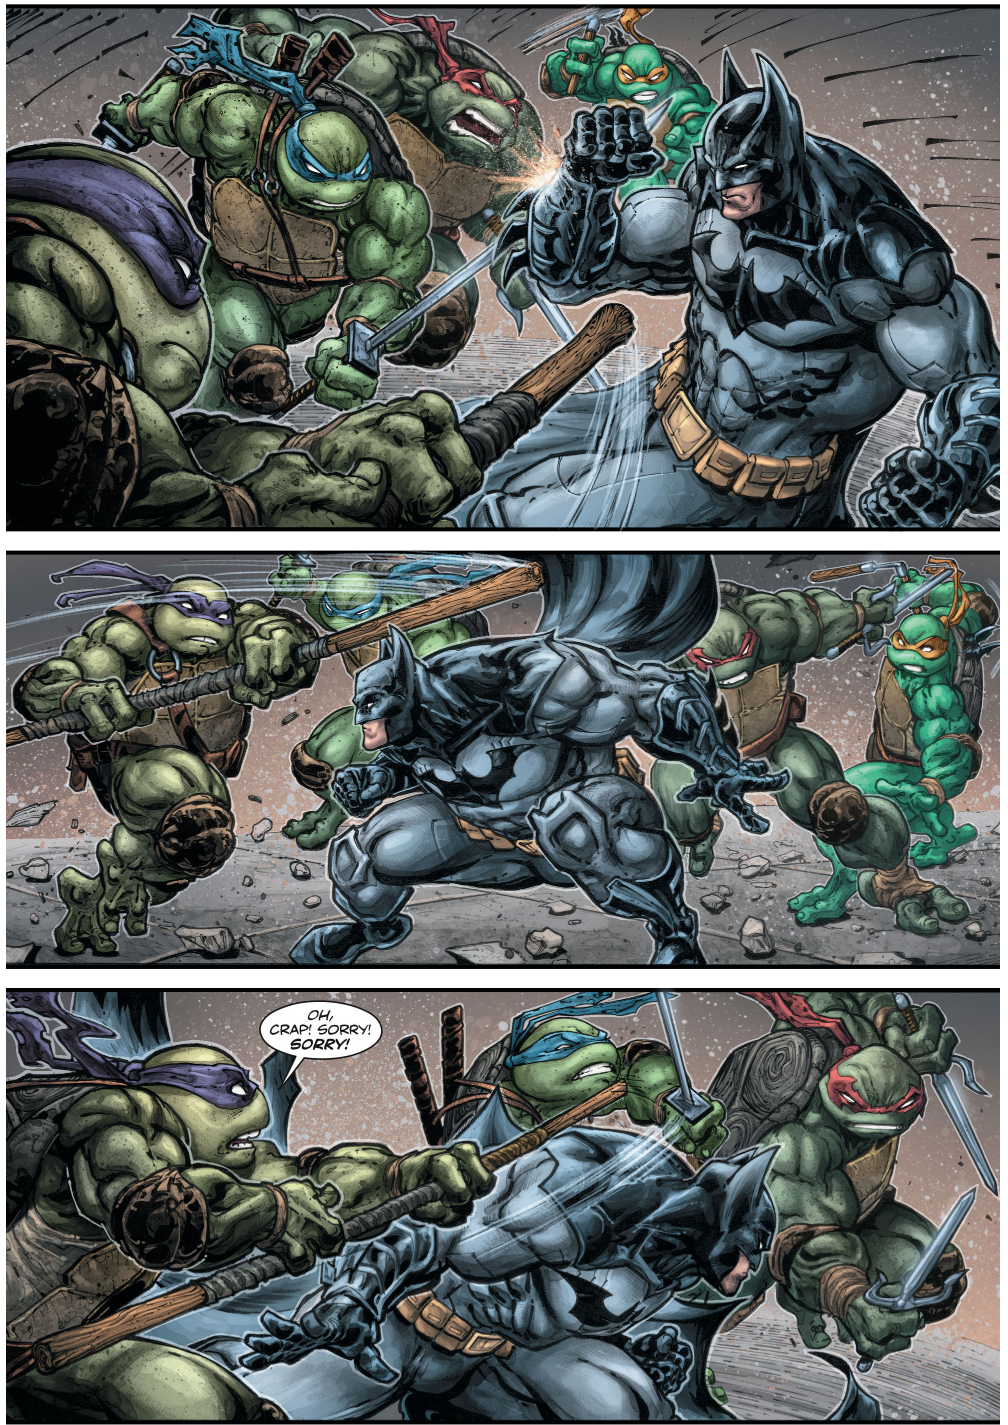 Batman Vs Teenage Mutant Ninja Turtles